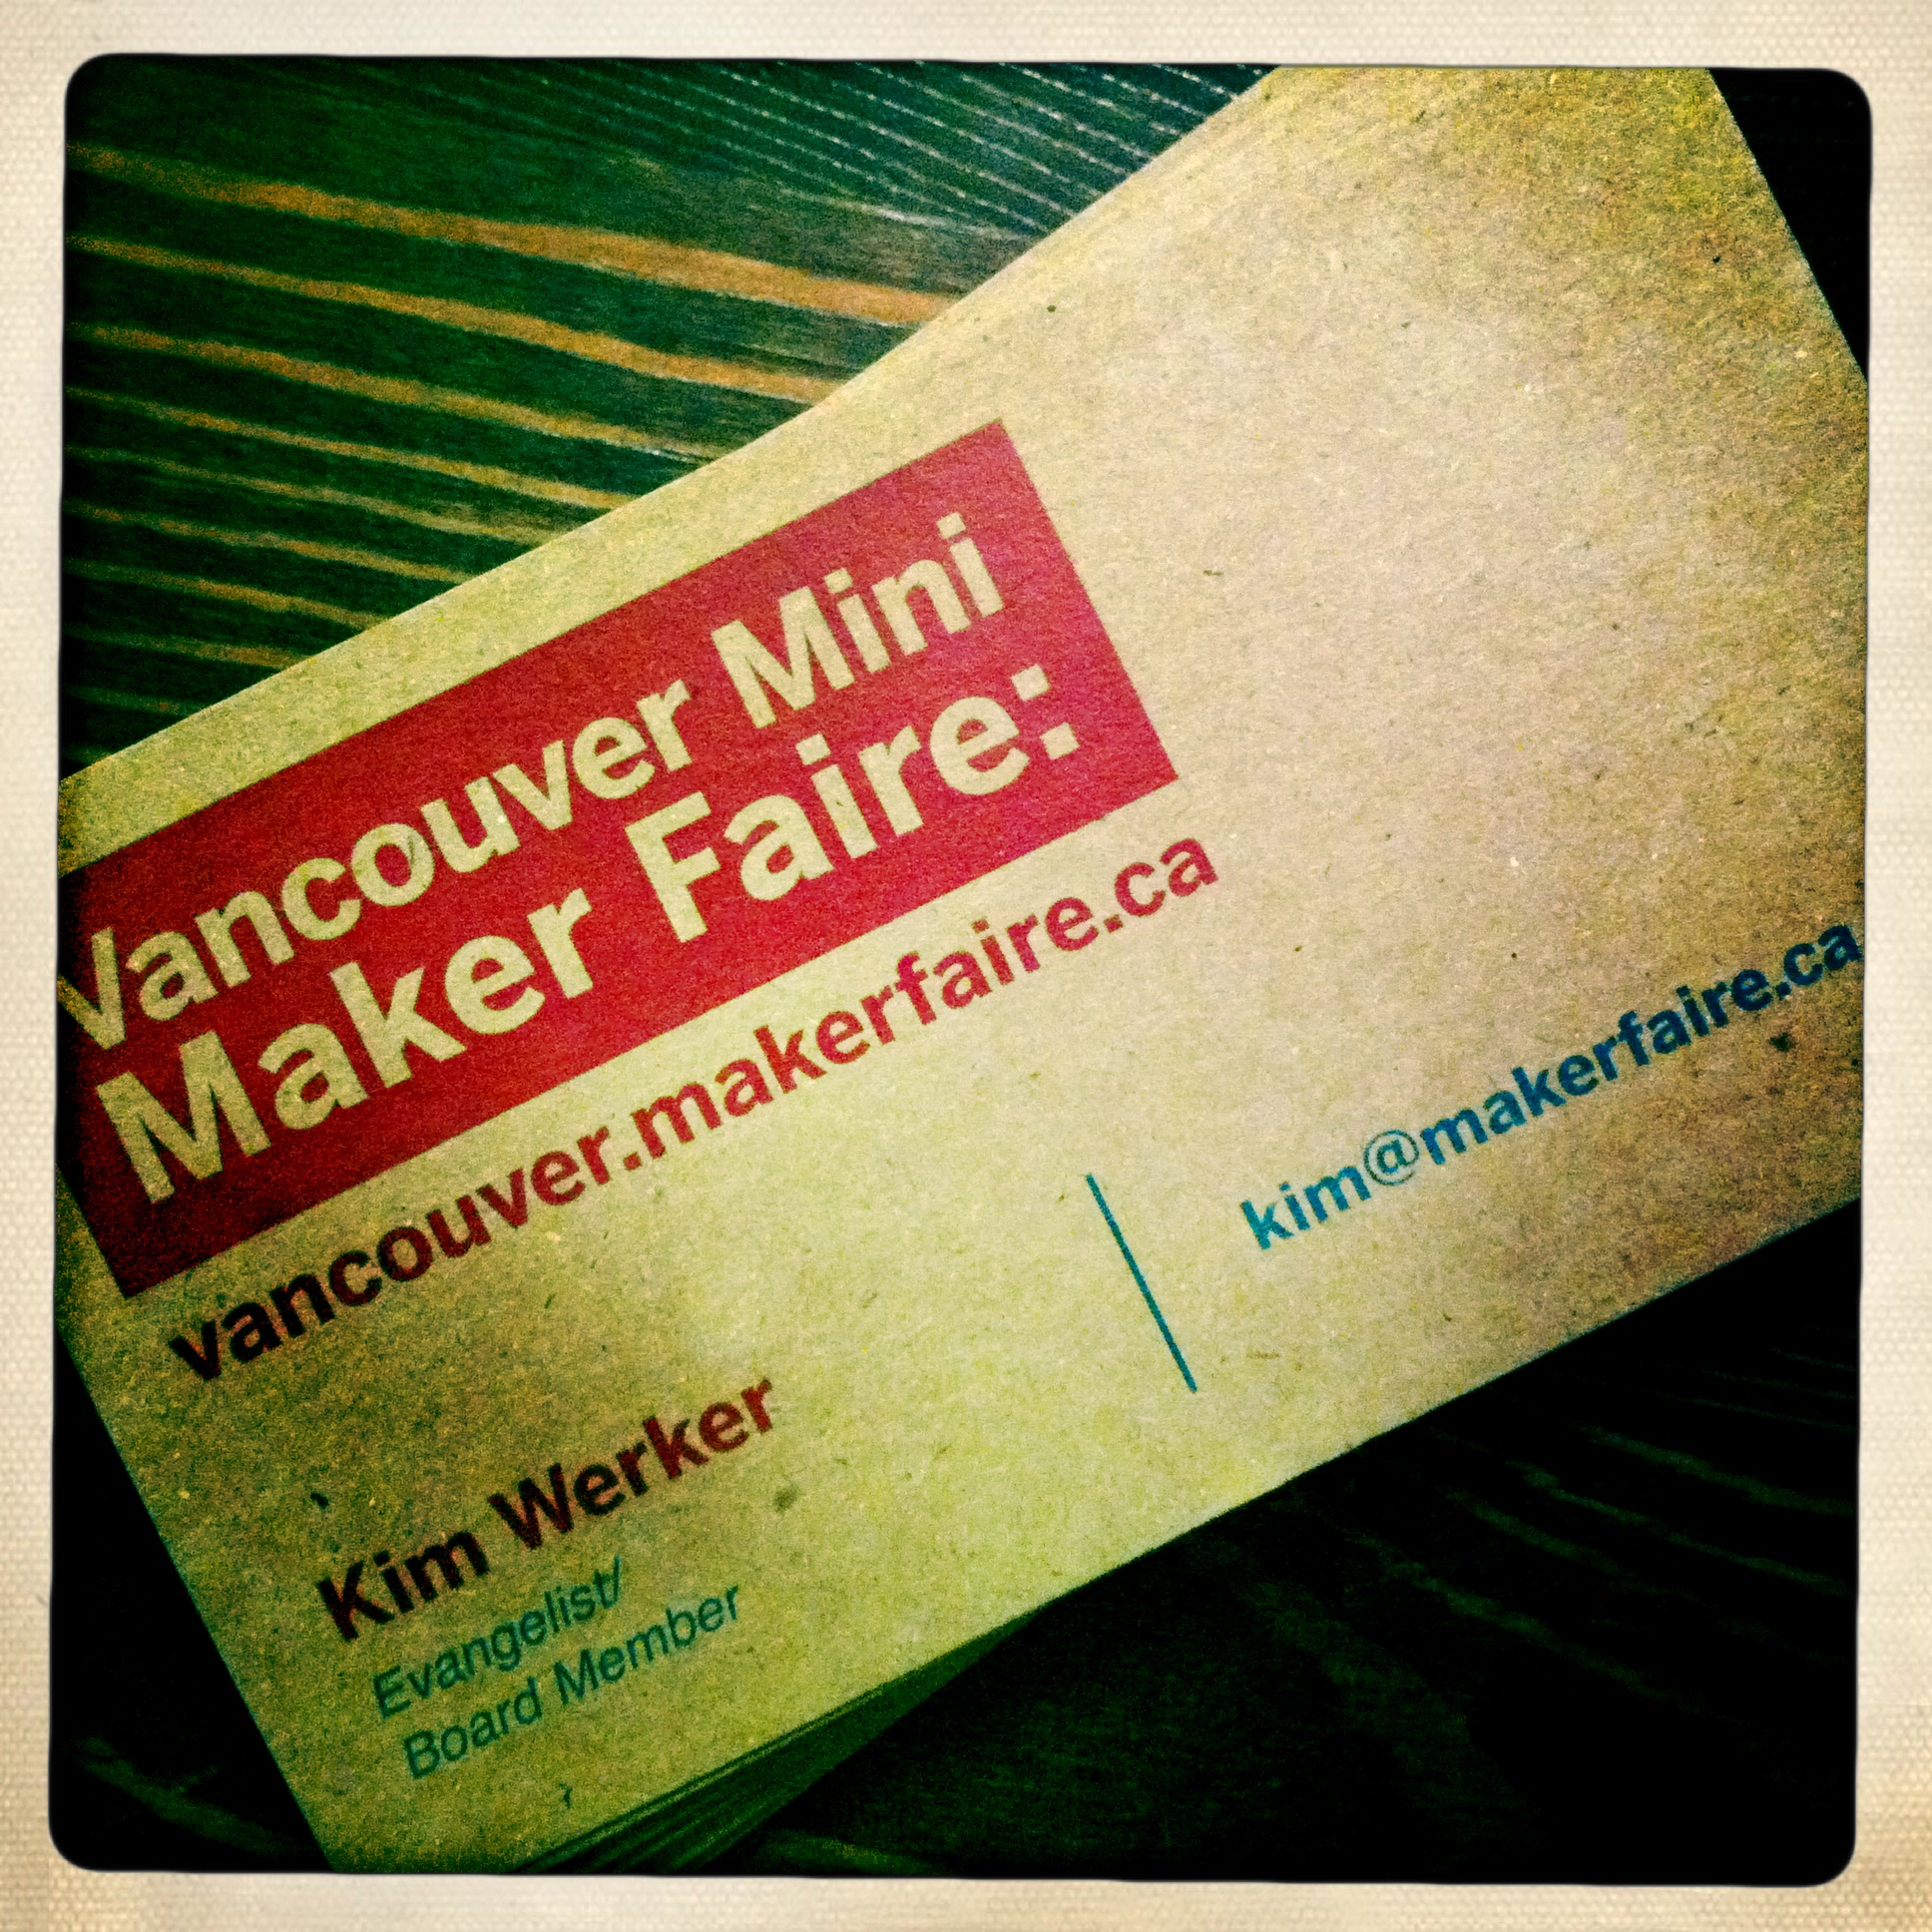 I joined the newly formed Vancouver Maker Foundation as a founding board member.